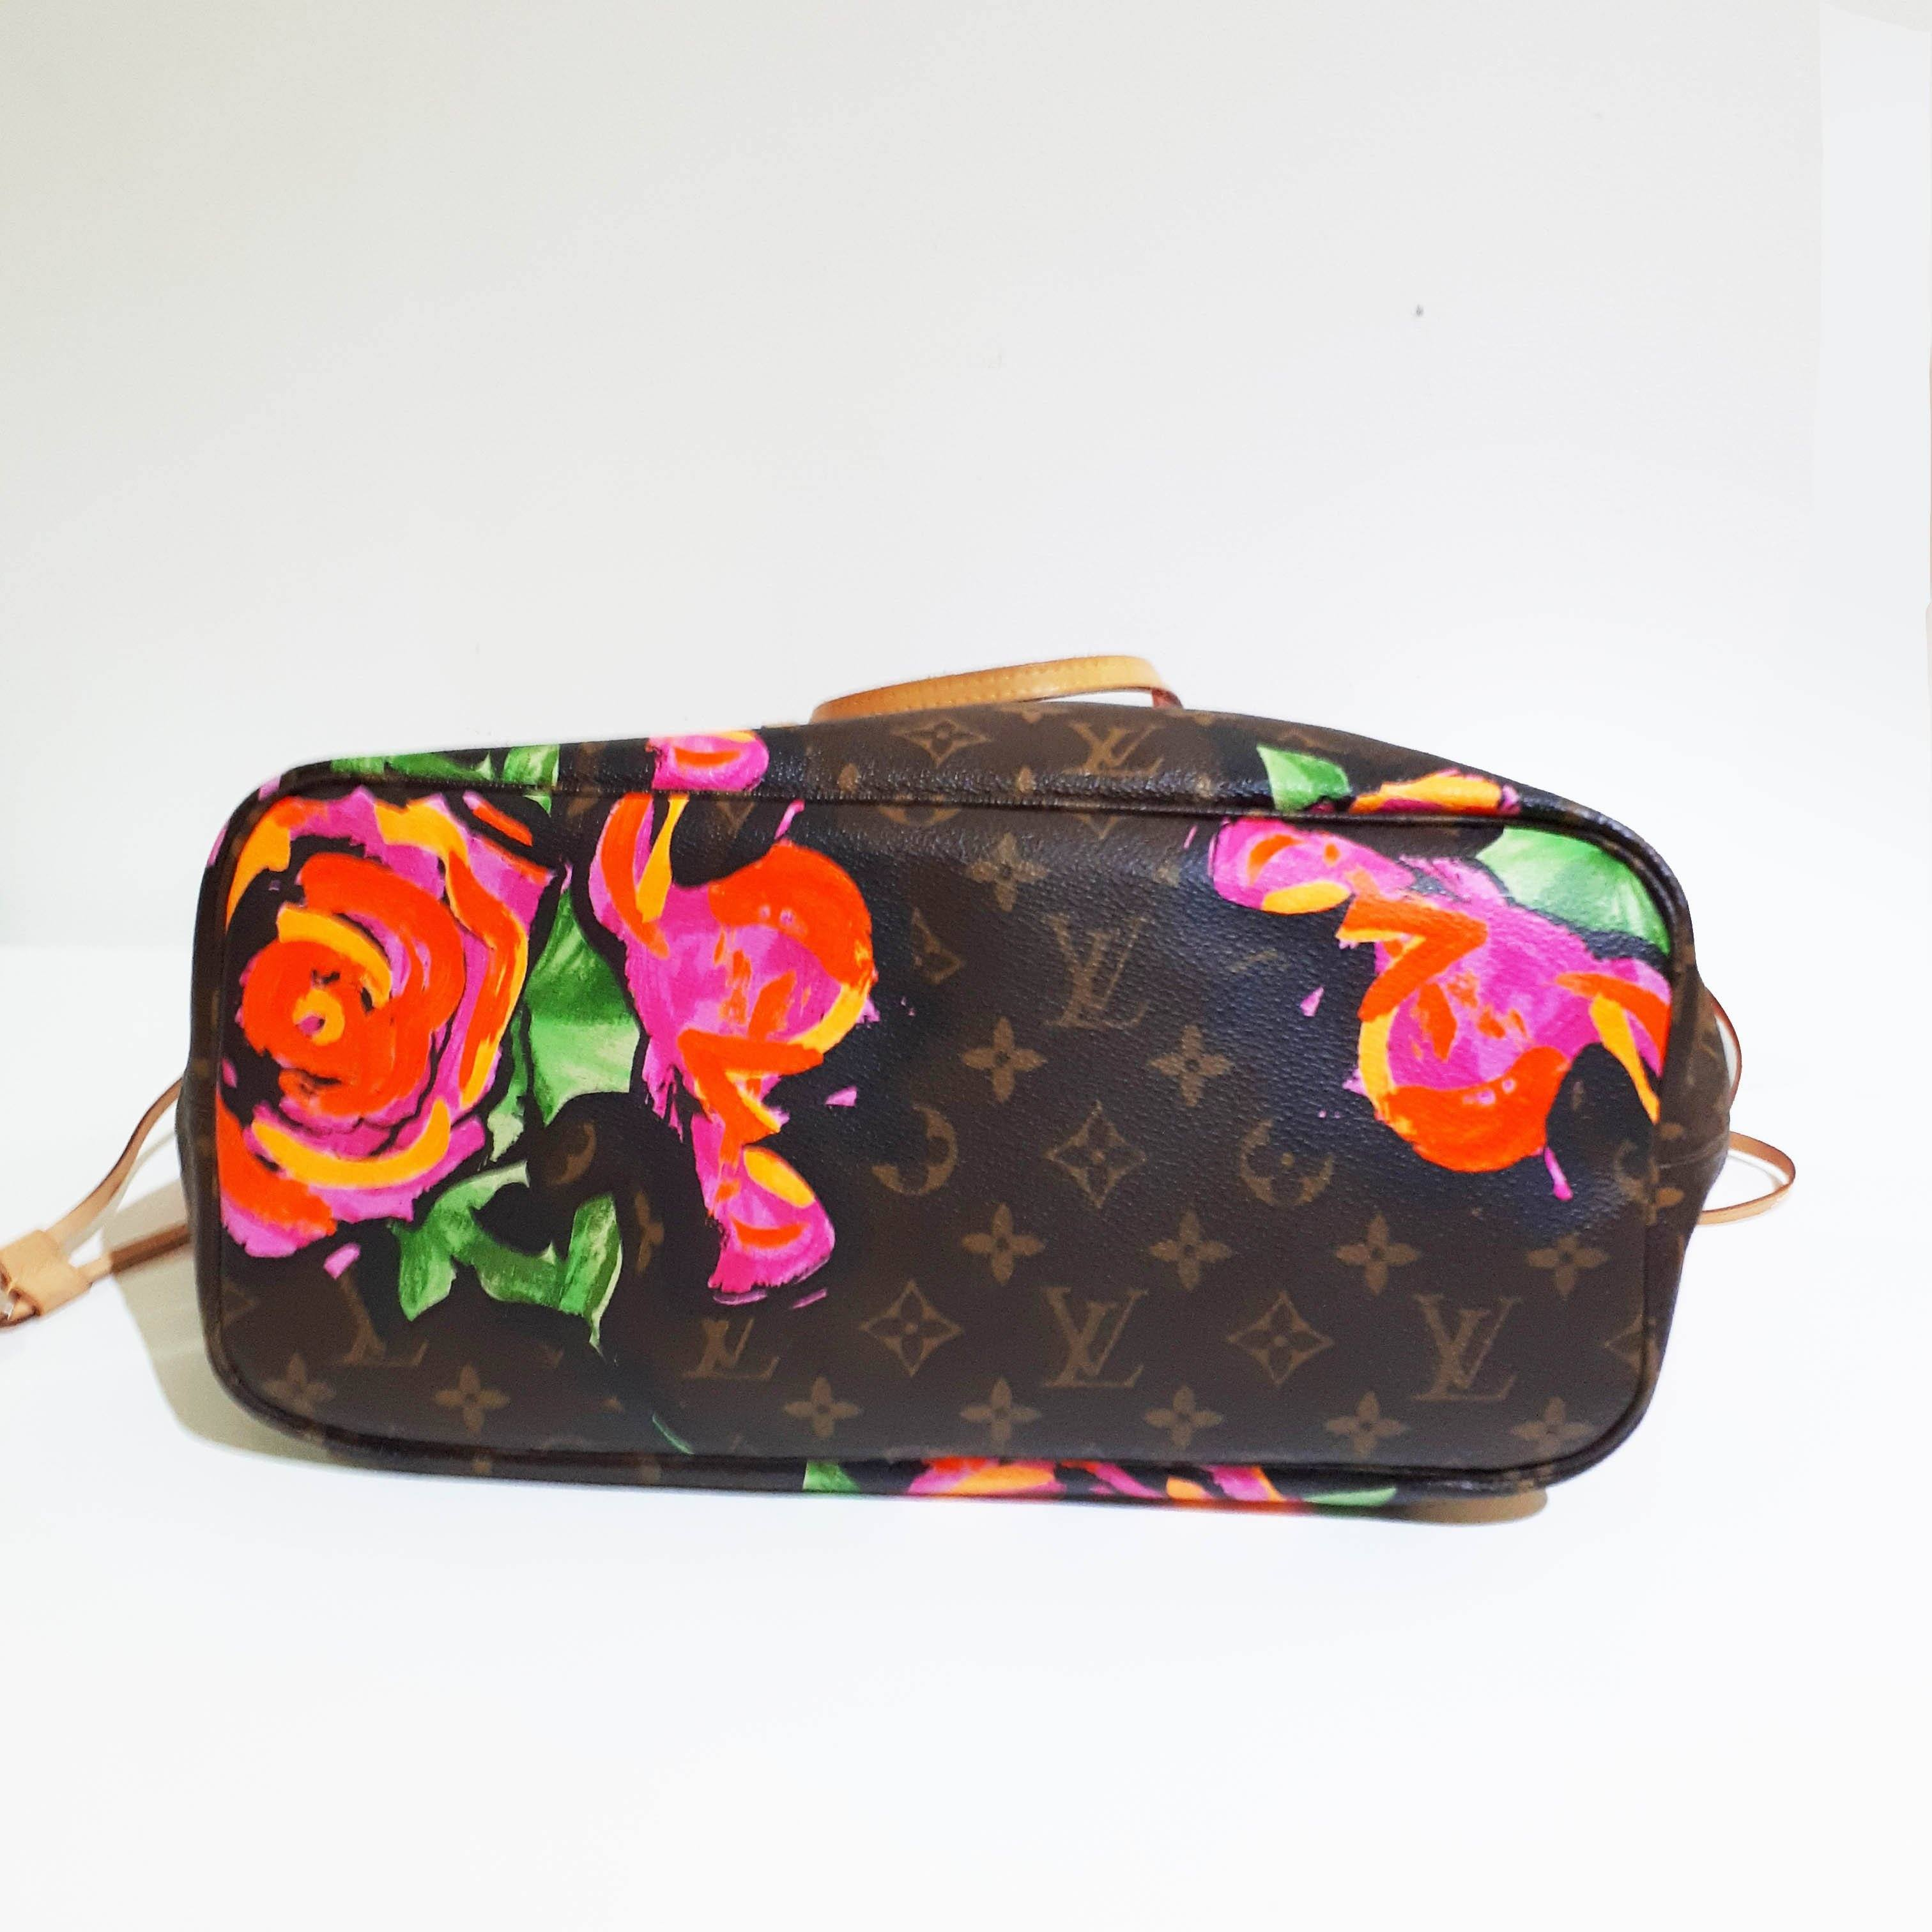 Louis Vuitton Stephen Sprouse Roses Neverfull MM Bag